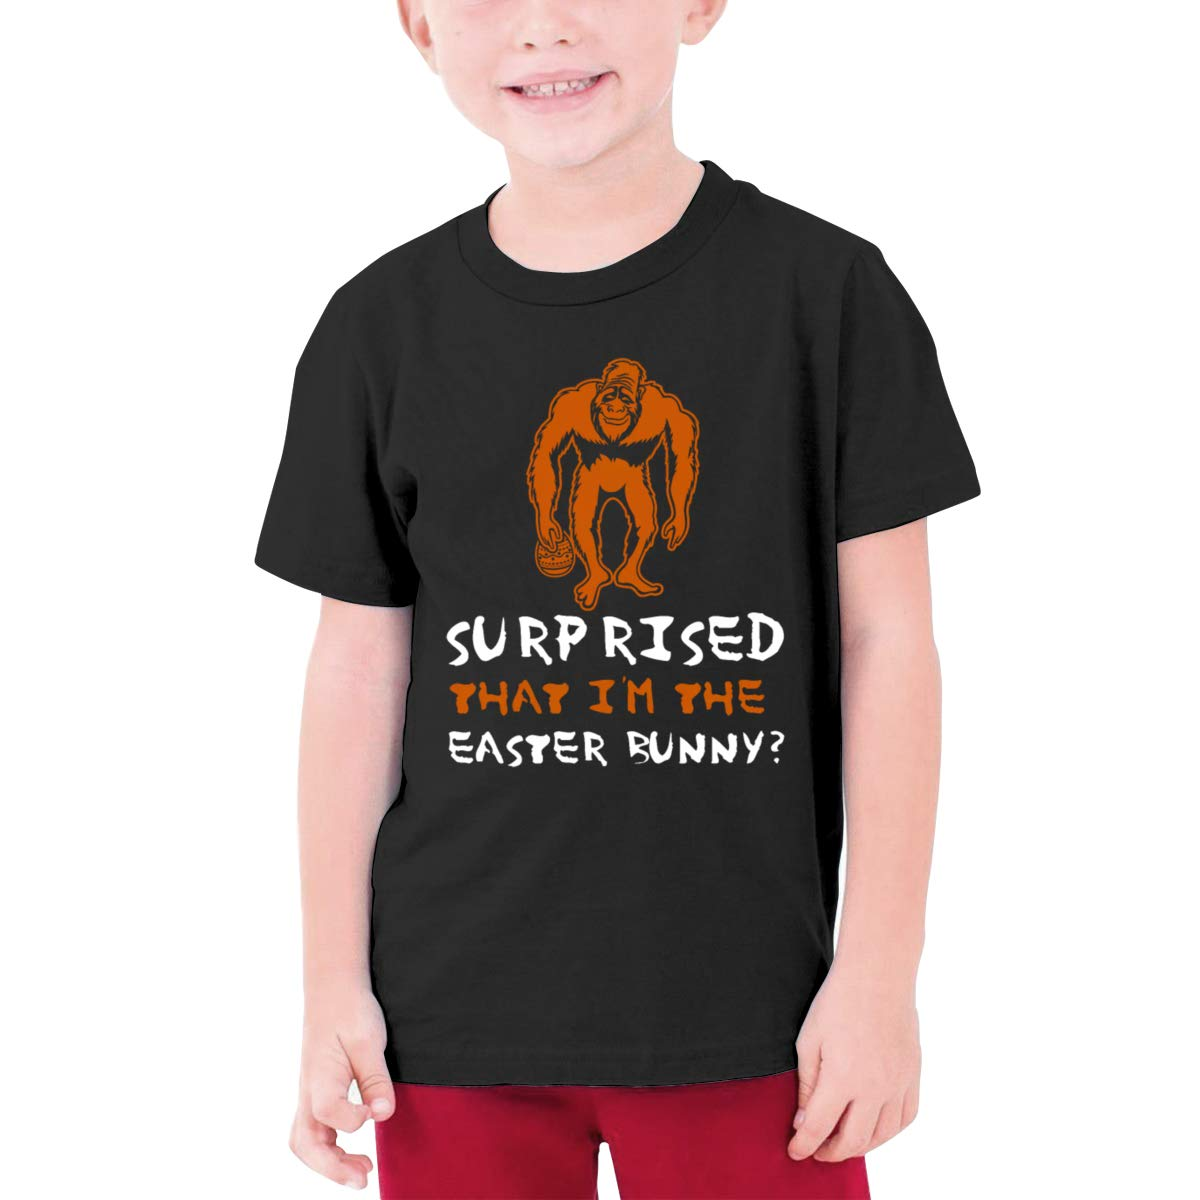 Surp Rised That Lm The Easter Bunny Short Sleeve T Shirts 1445